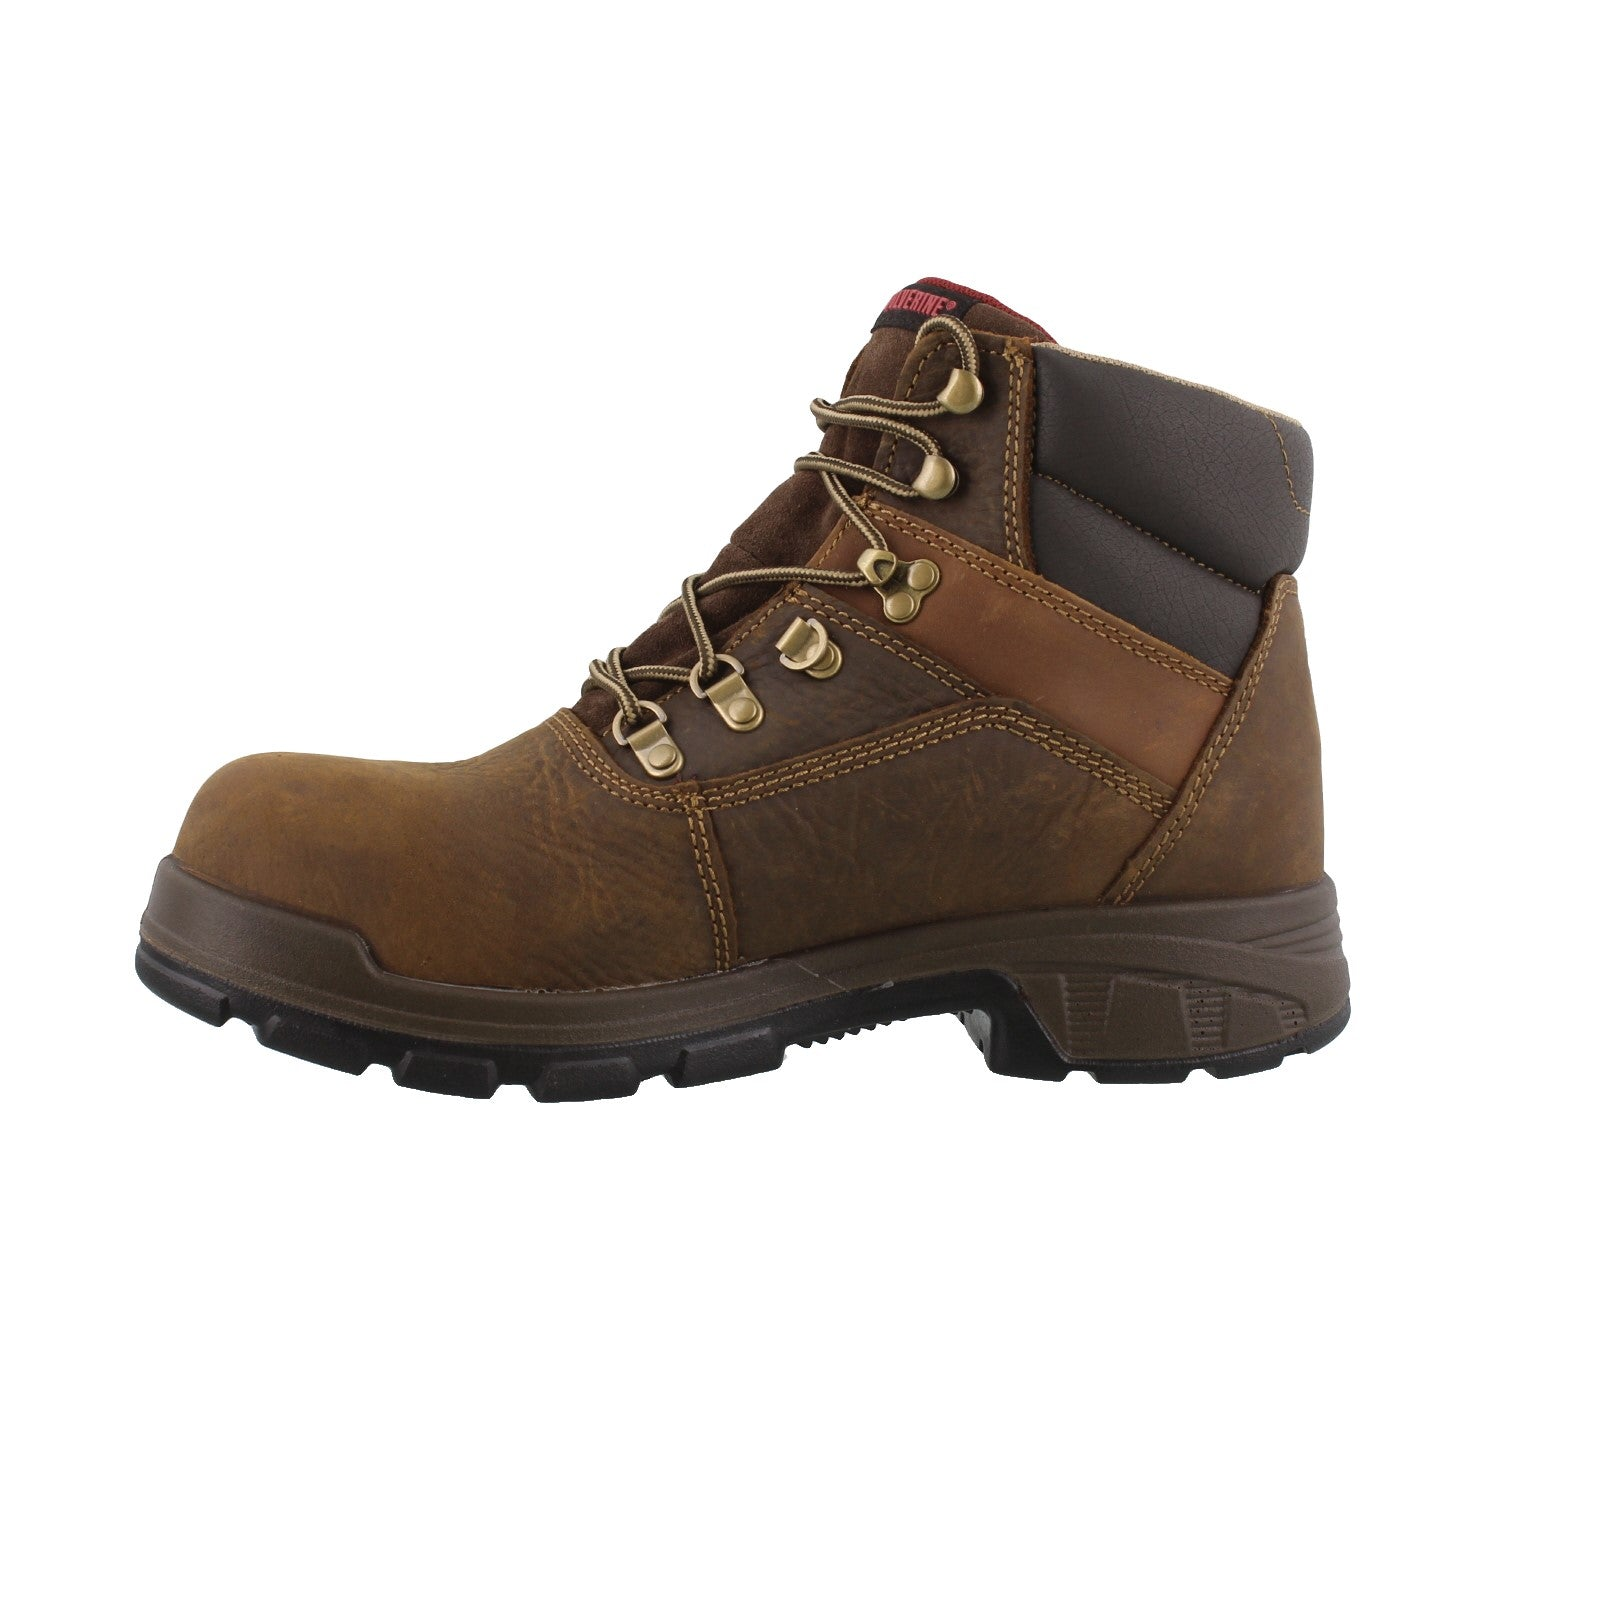 6b4b3ca459f Wolverine W10314 Men's Cabor EPX Waterproof Composite Toe Boot ...